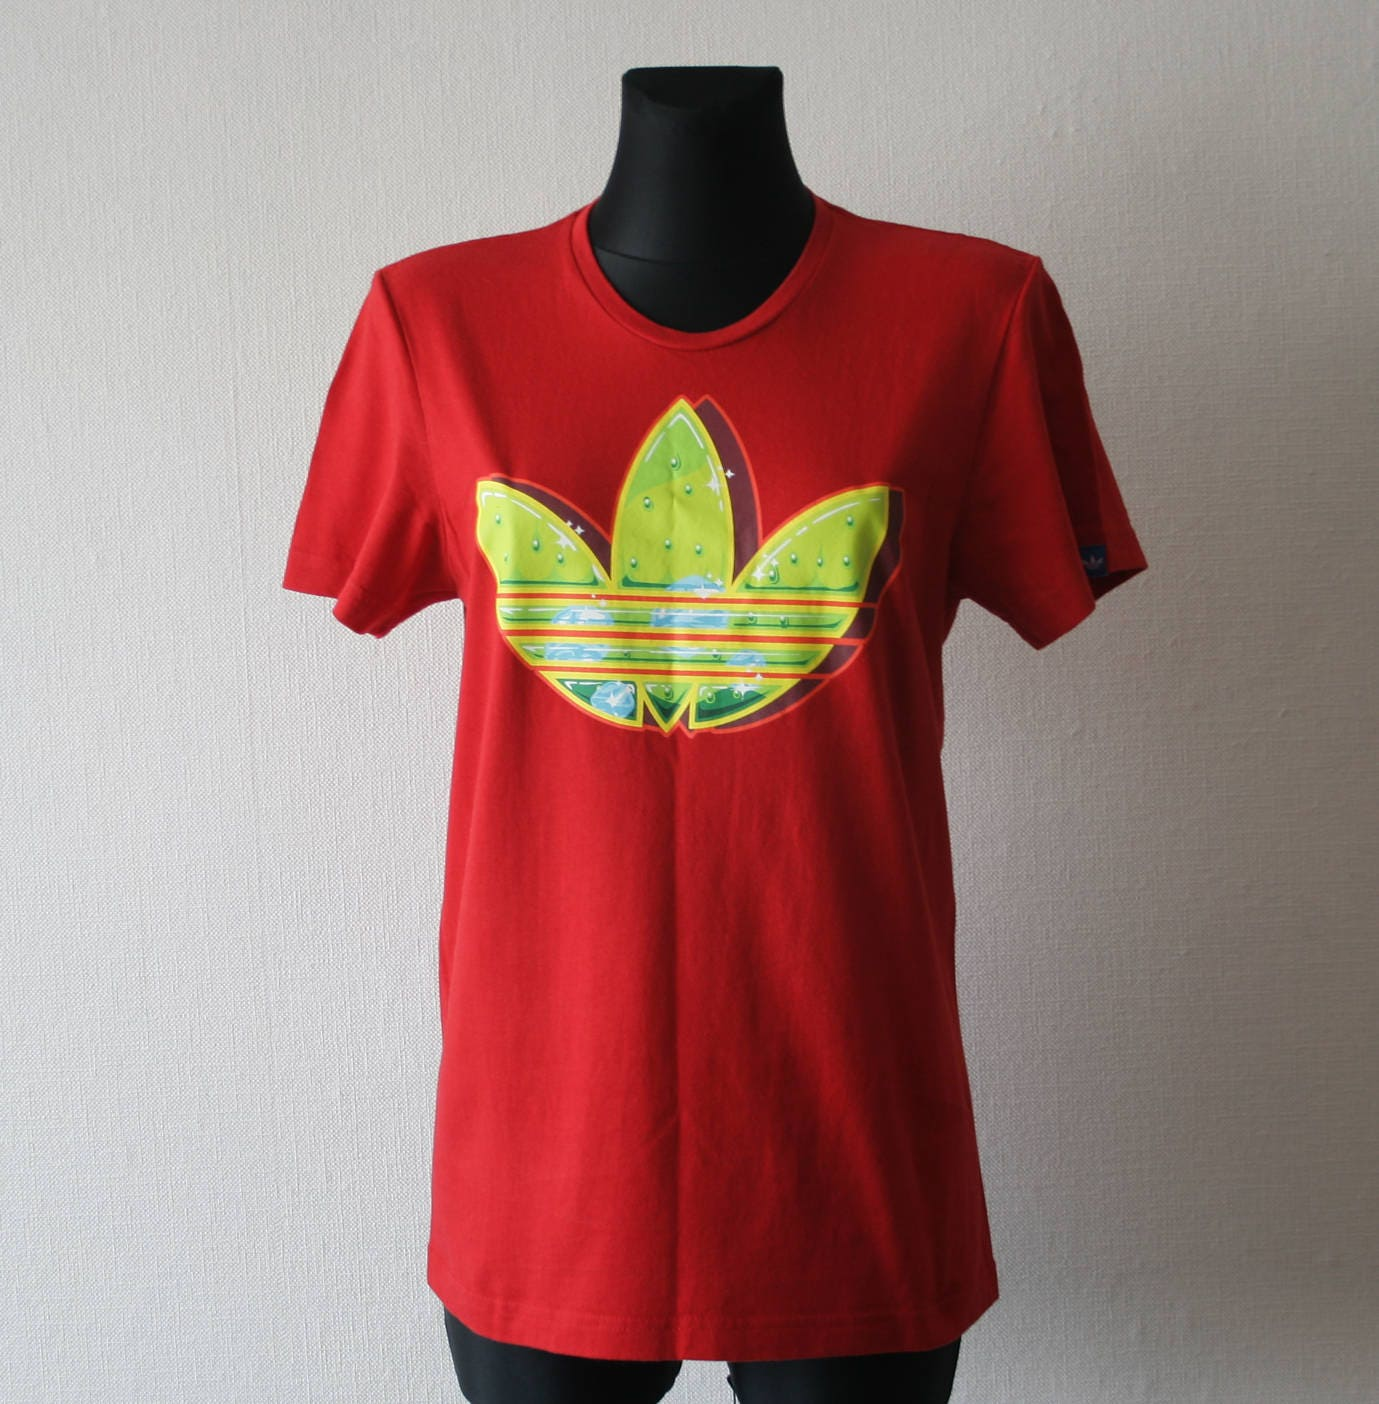 95d519740 Vintage ADIDAS red T shirt Bright electric green trefoil on | Etsy